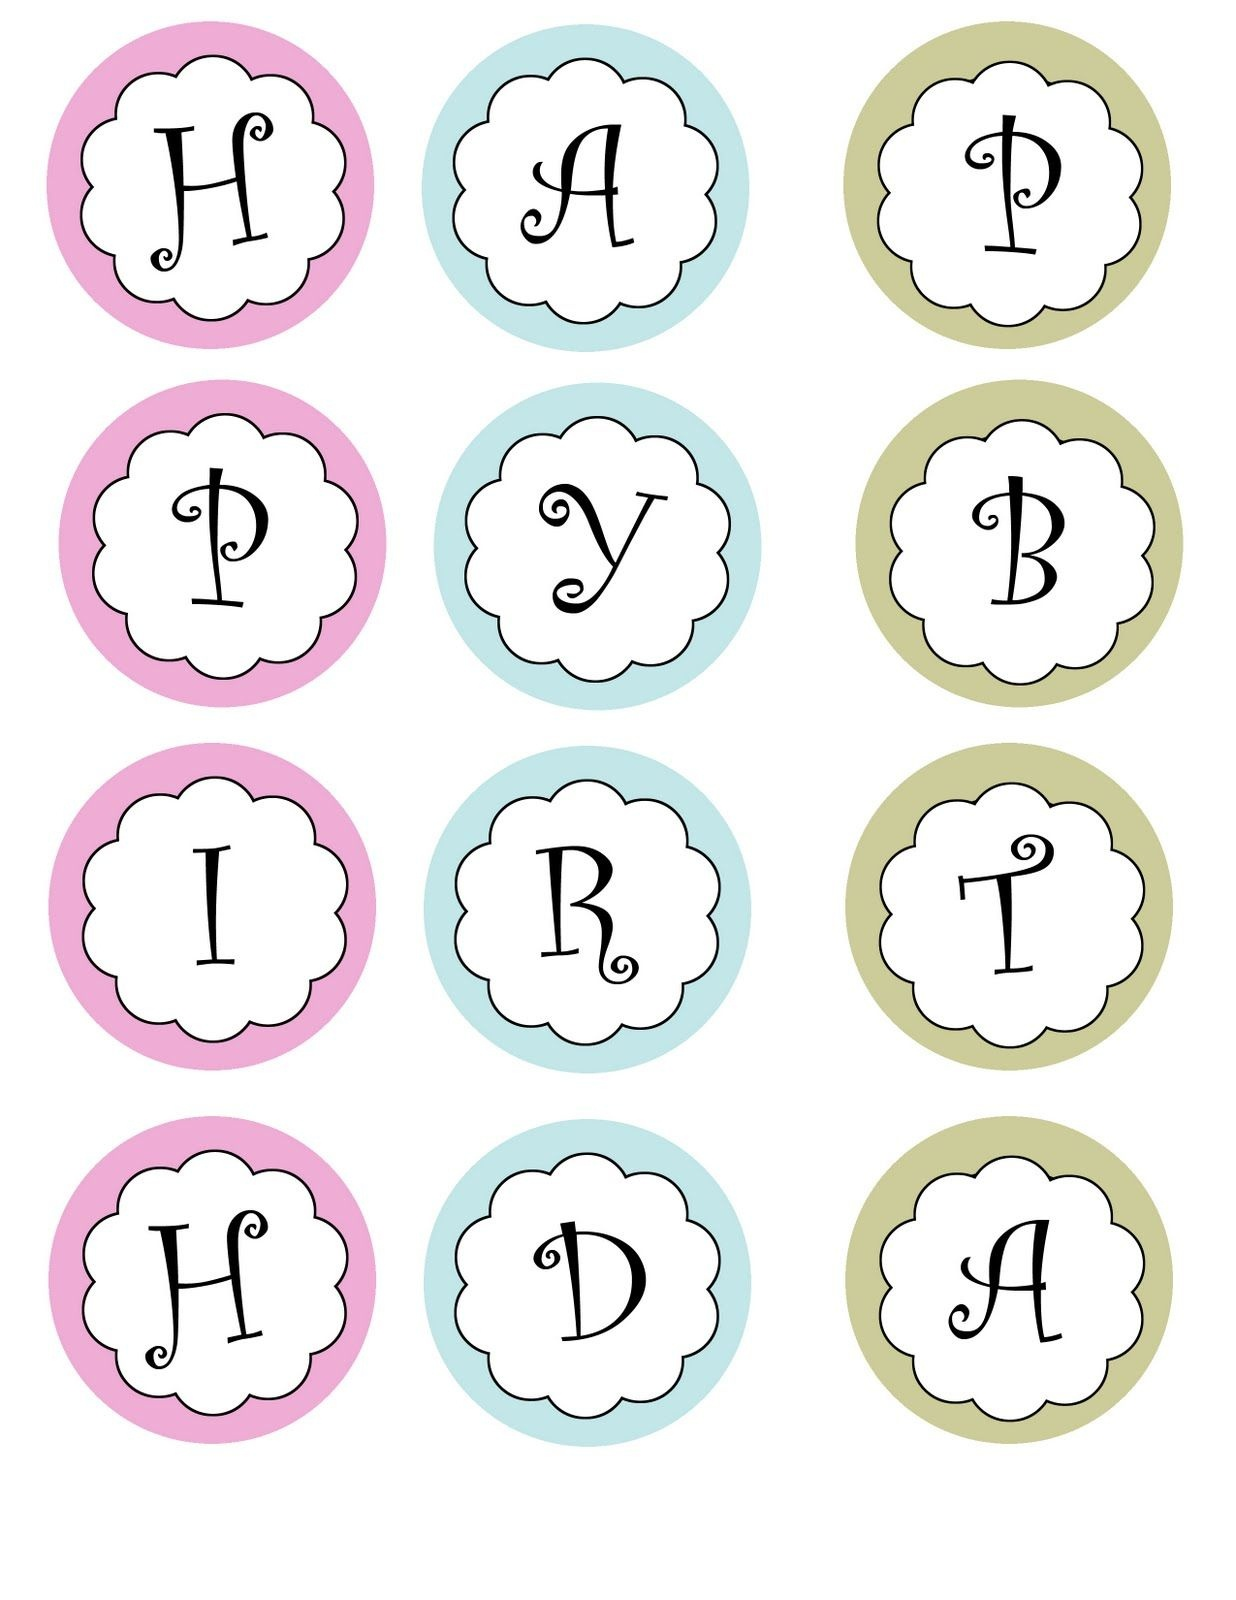 Printable Banners Templates Free | Print Your Own Birthday Banner - Free Printable Birthday Banner